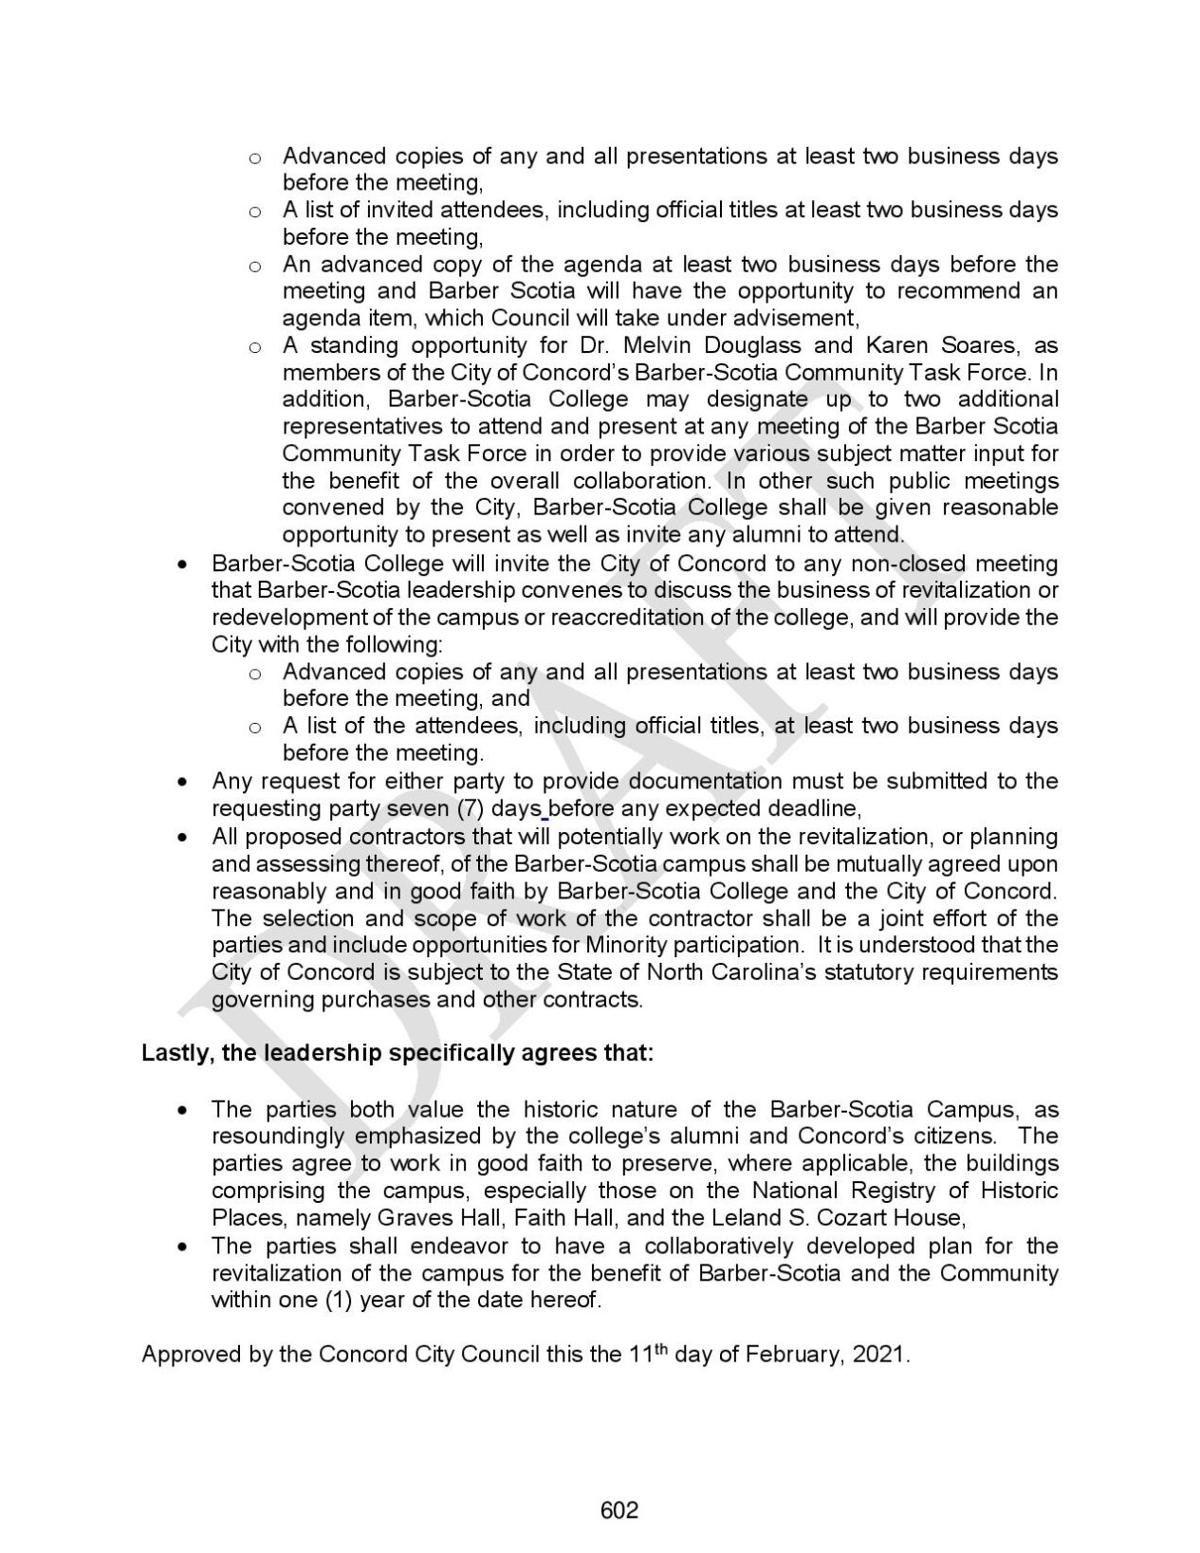 Barber-Scotia Agreement Page 2